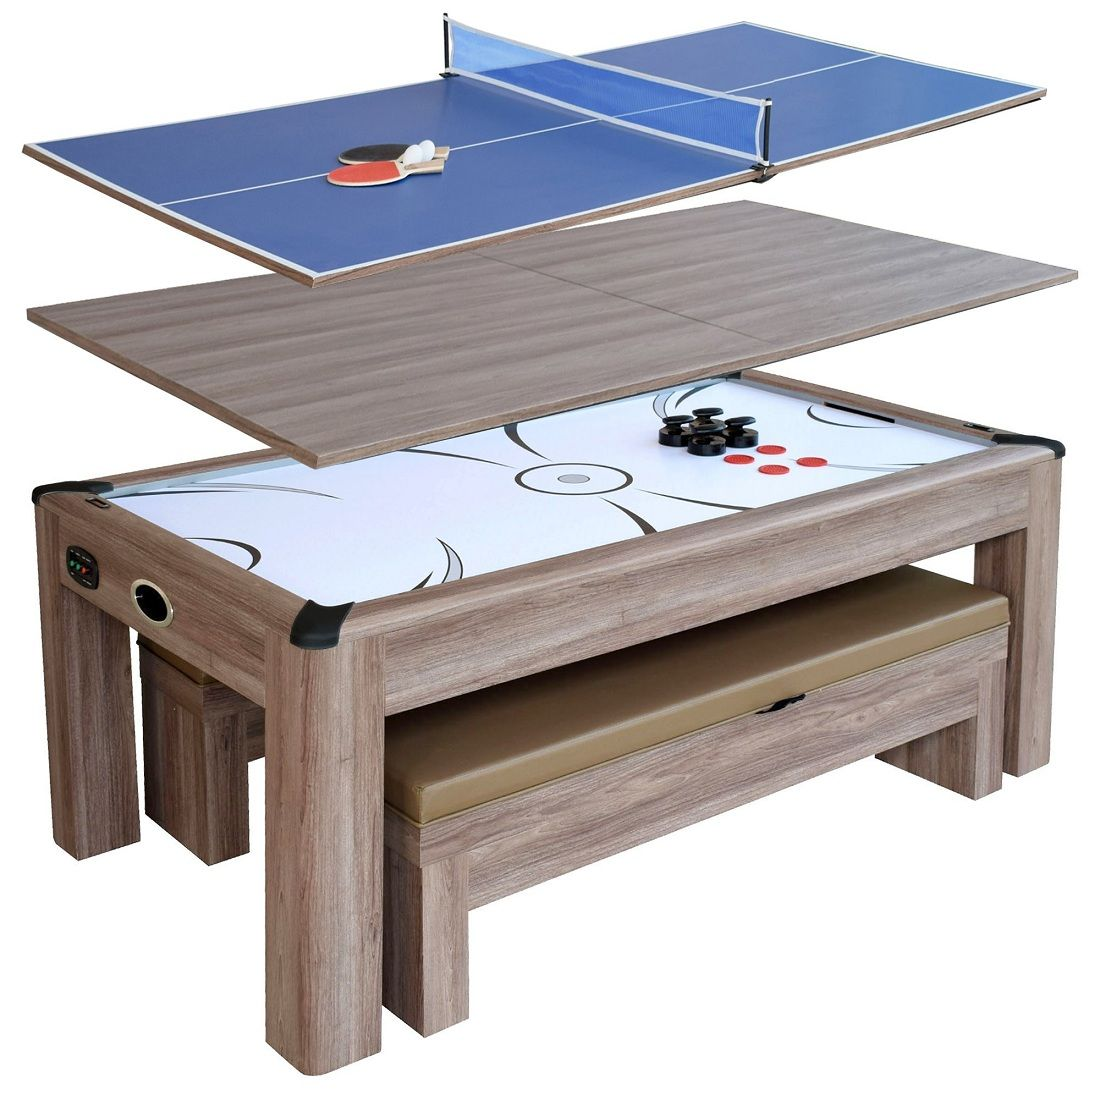 The Multi Functional Driftwood 7 Ft Air Hockey Table Combo Set Delivers 3 Great Uses In Handsome Style The Driftw In 2020 Multi Game Table Air Hockey Table Air Hockey